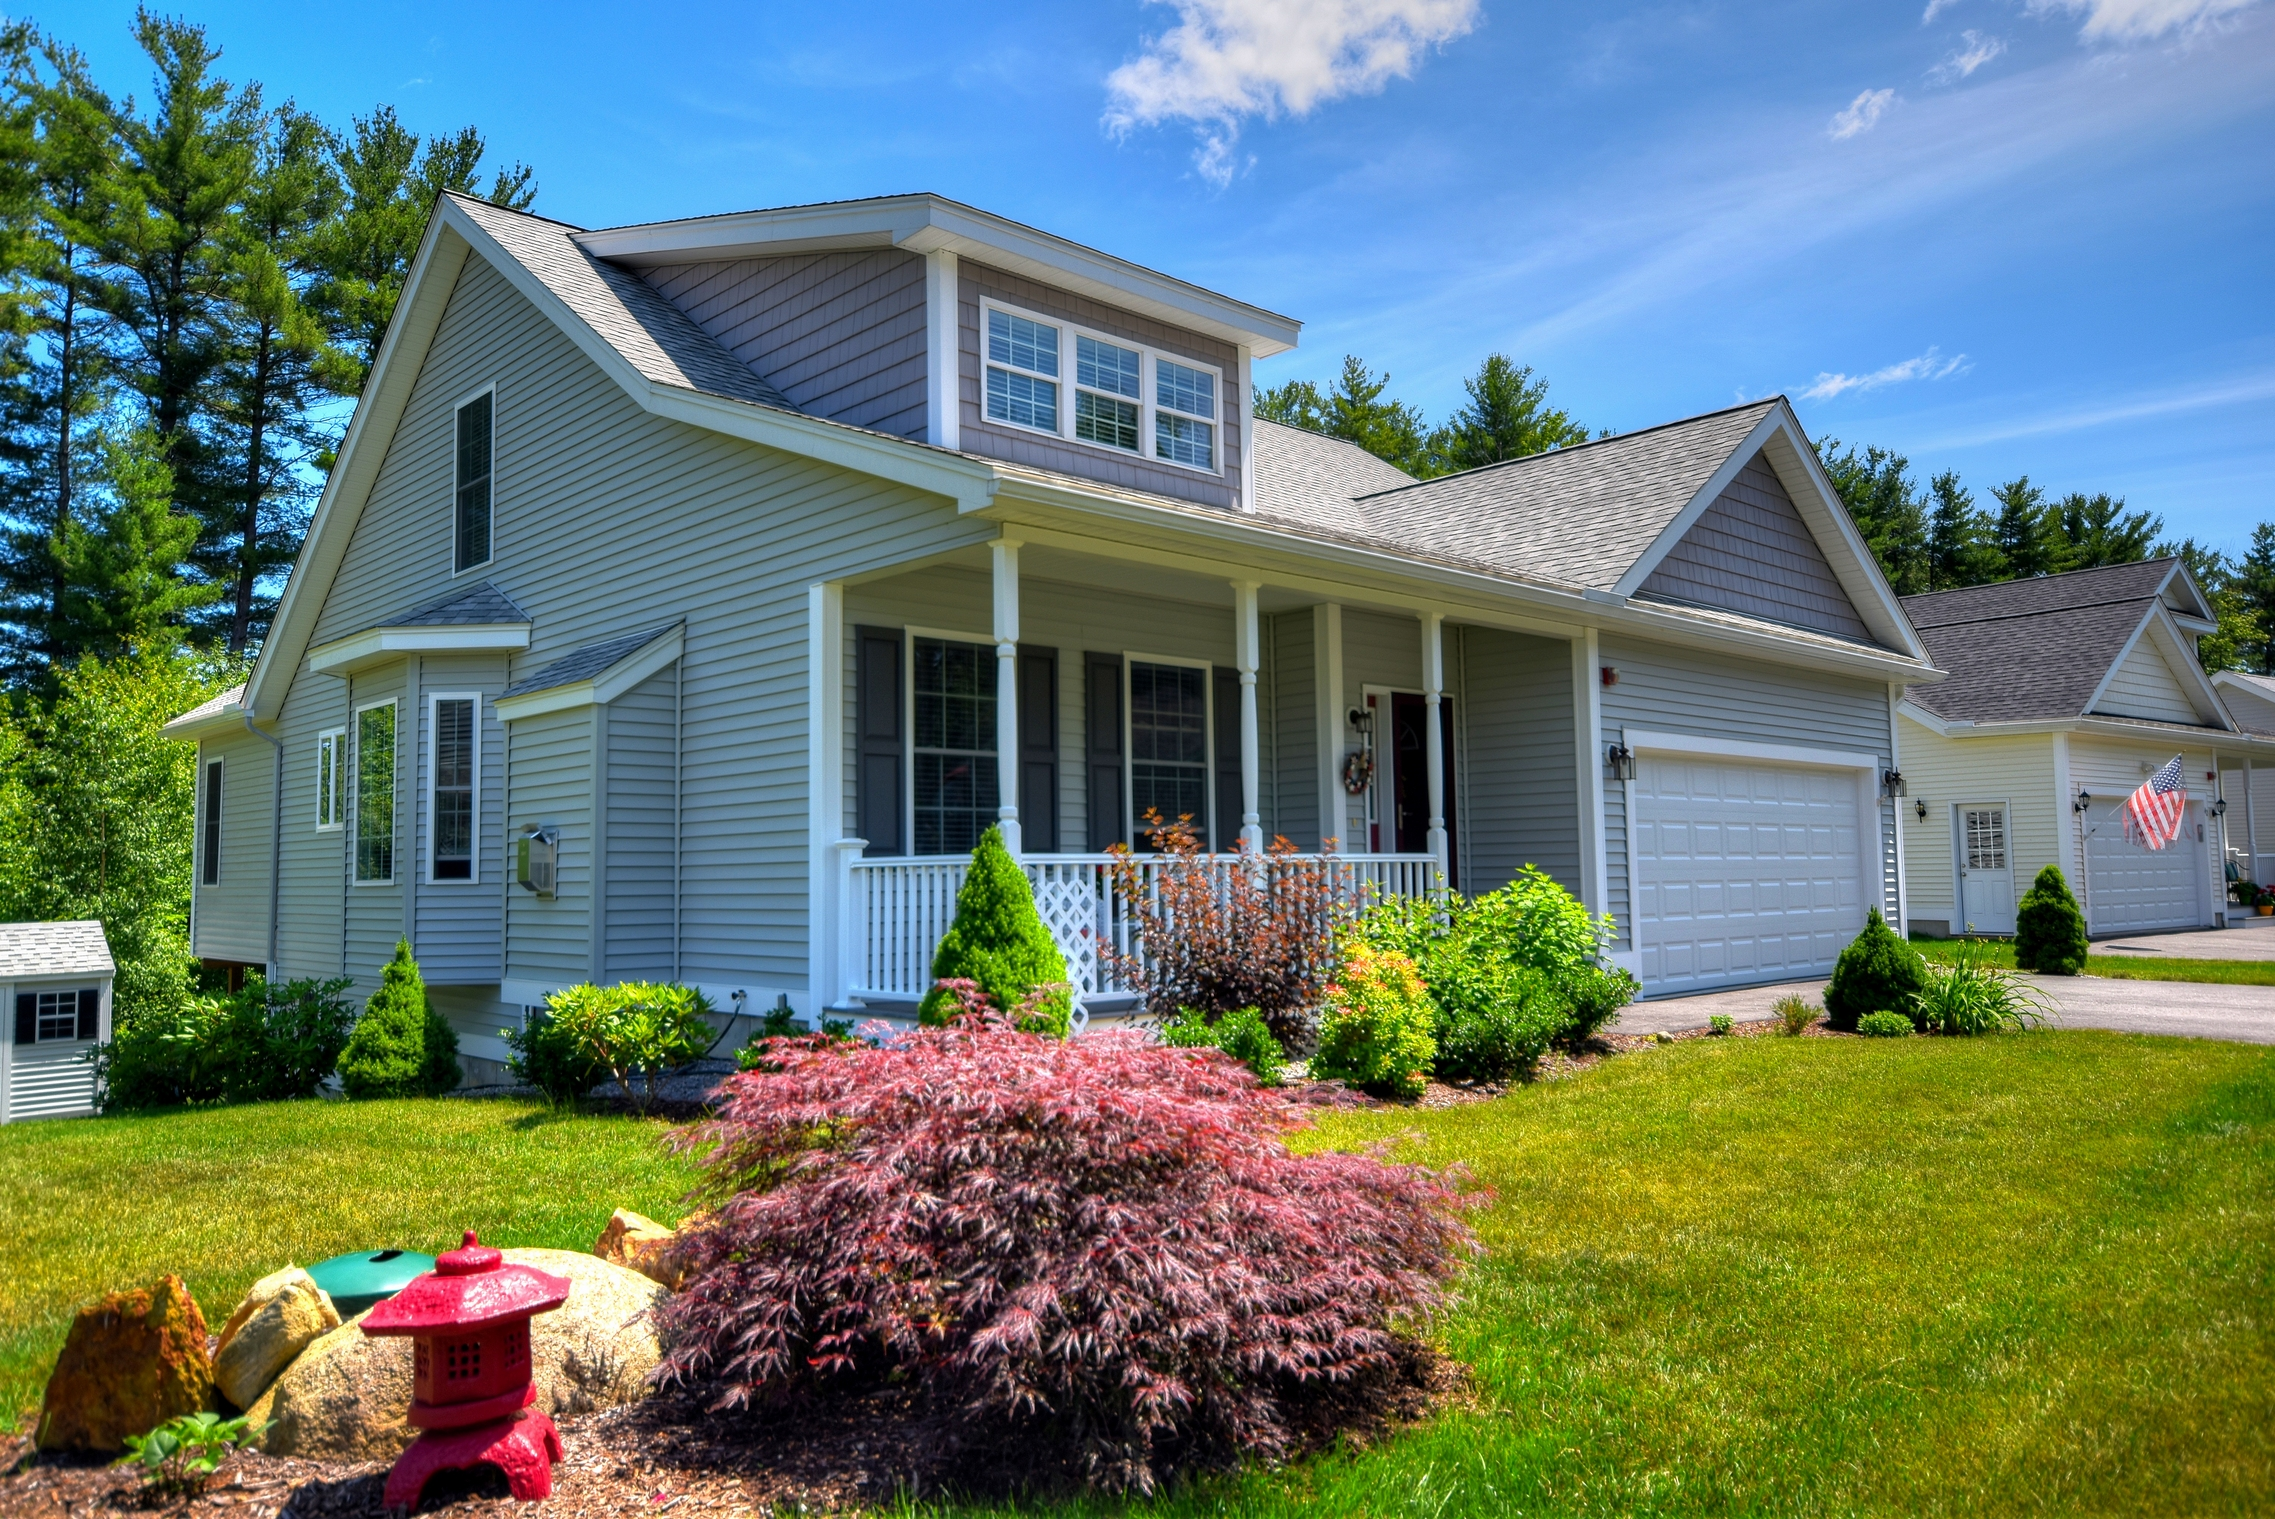 Single Family Home for Sale at 36 Port Way, Laconia Laconia, New Hampshire, 03246 United States